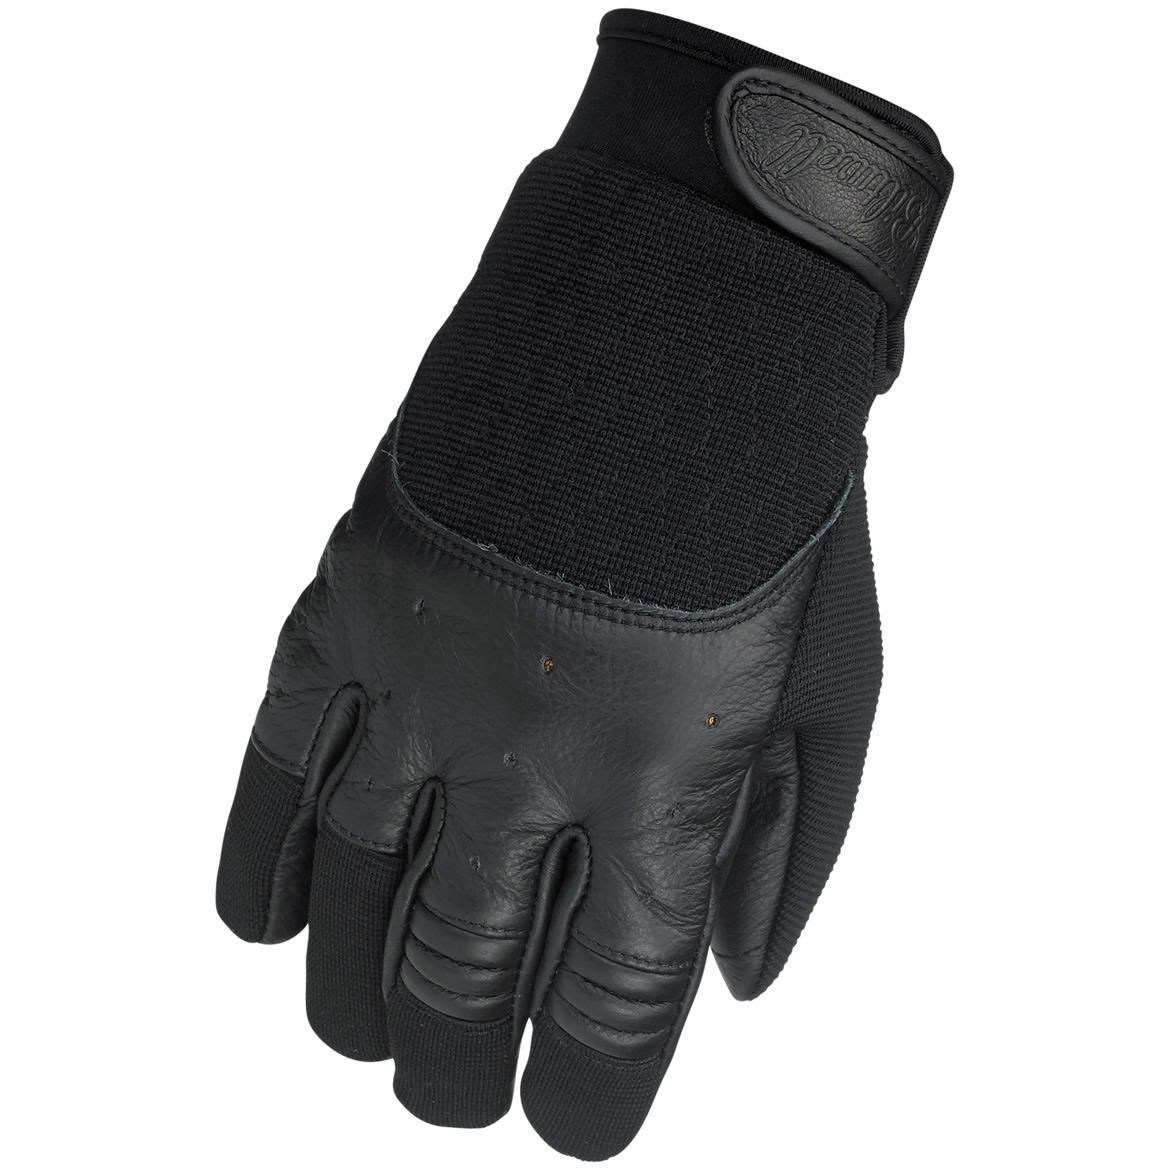 Motorcycle gloves singapore - Thumb